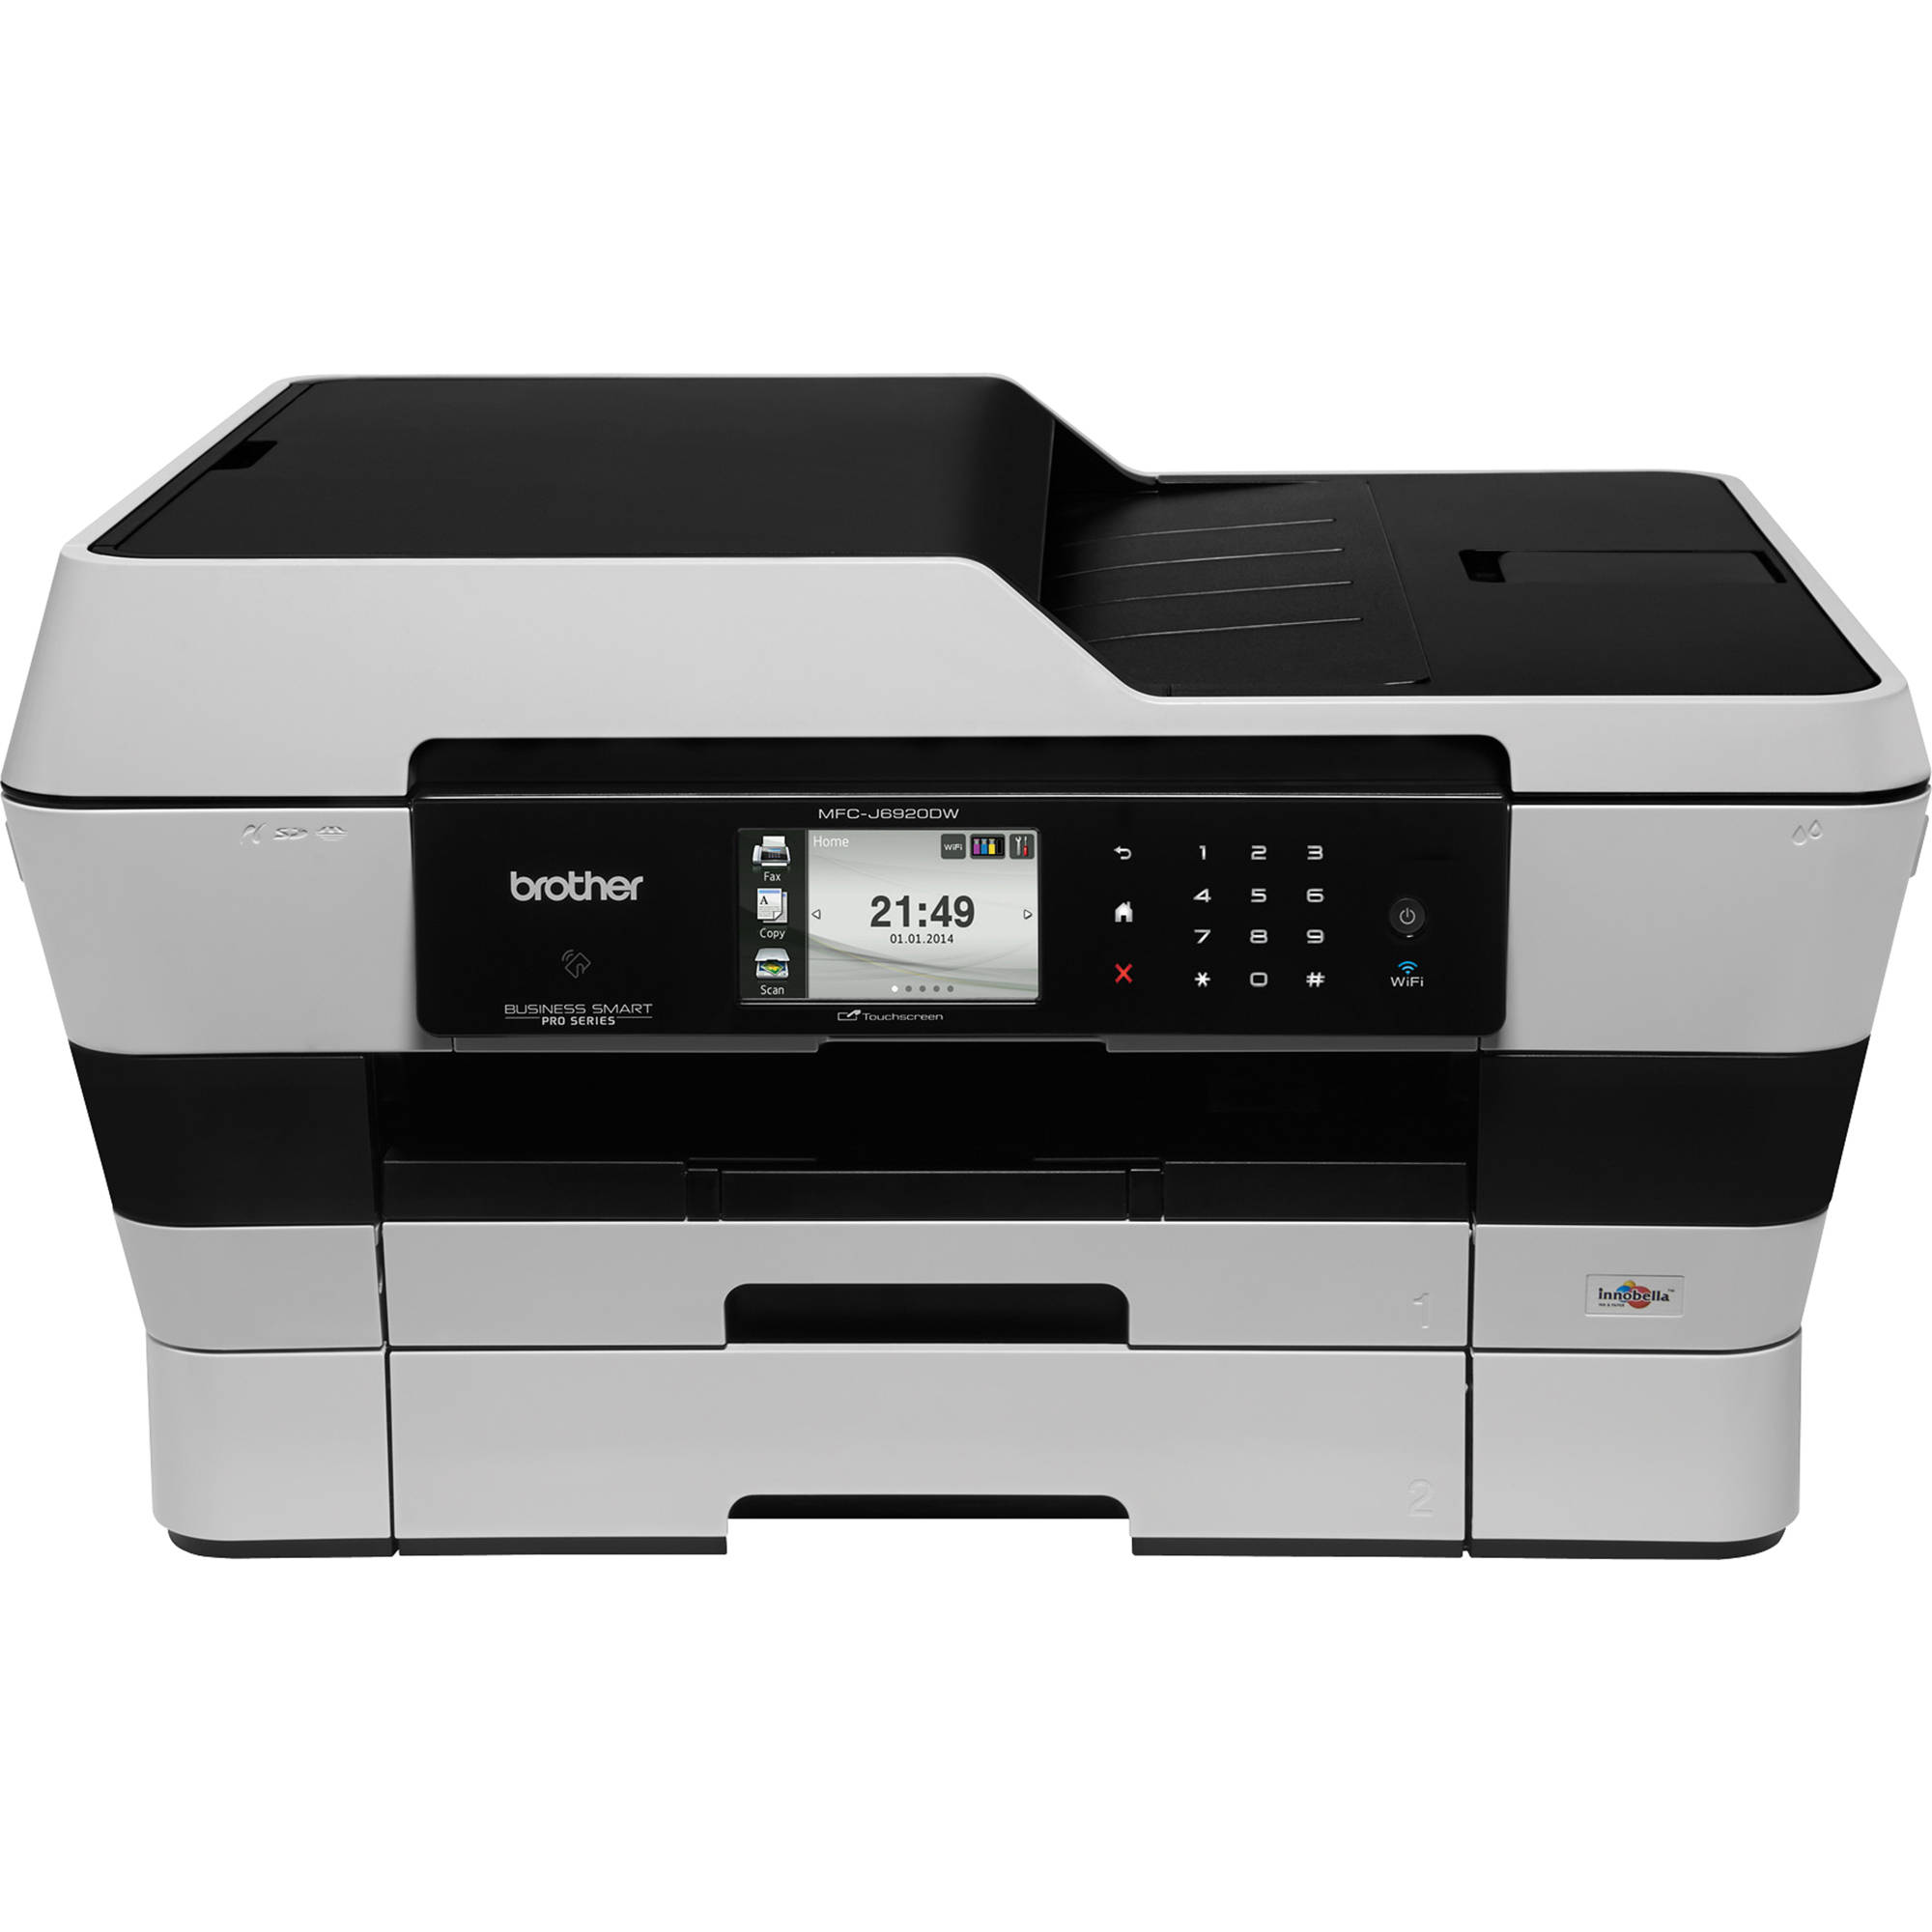 Brother MFC J6920DW Wireless Color All In One Inkjet MFC